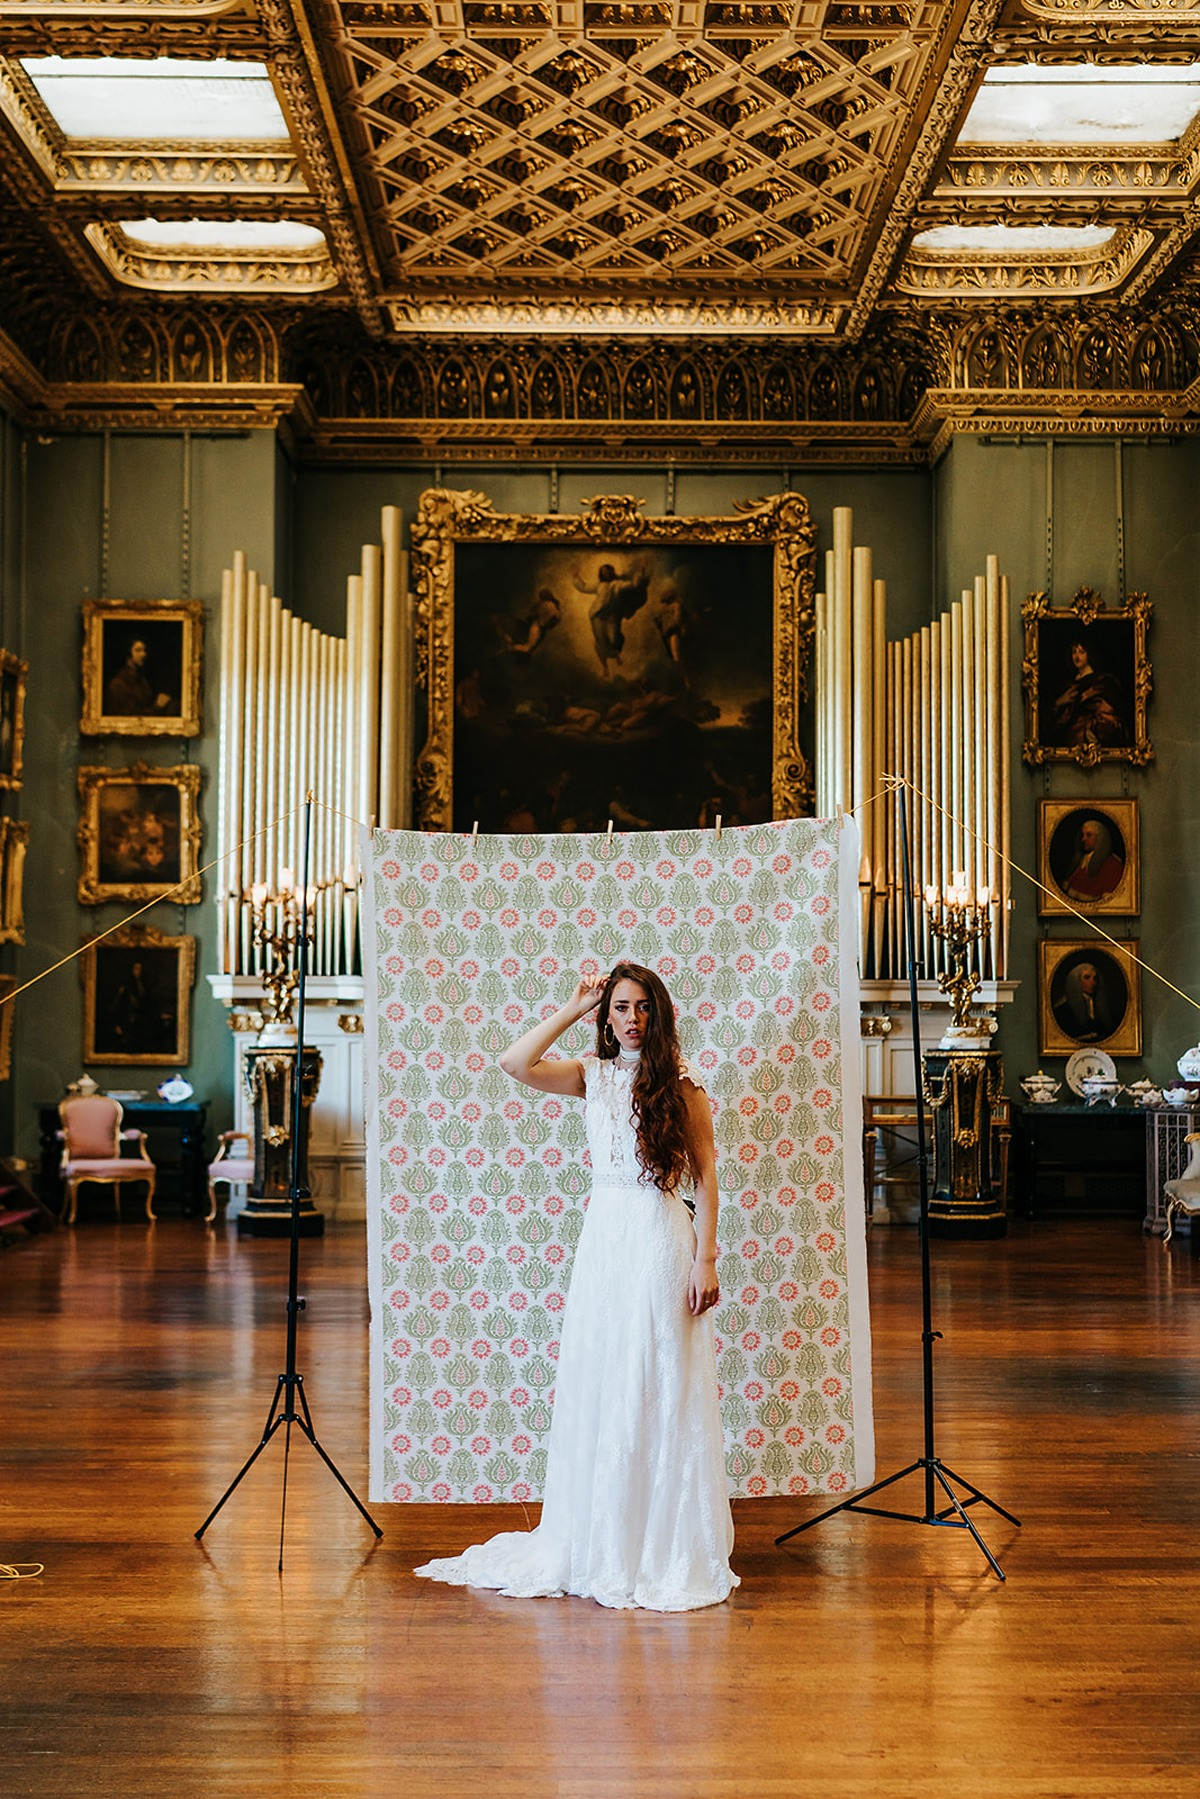 Fall vintage wedding ideas at the Somerley House in the UK